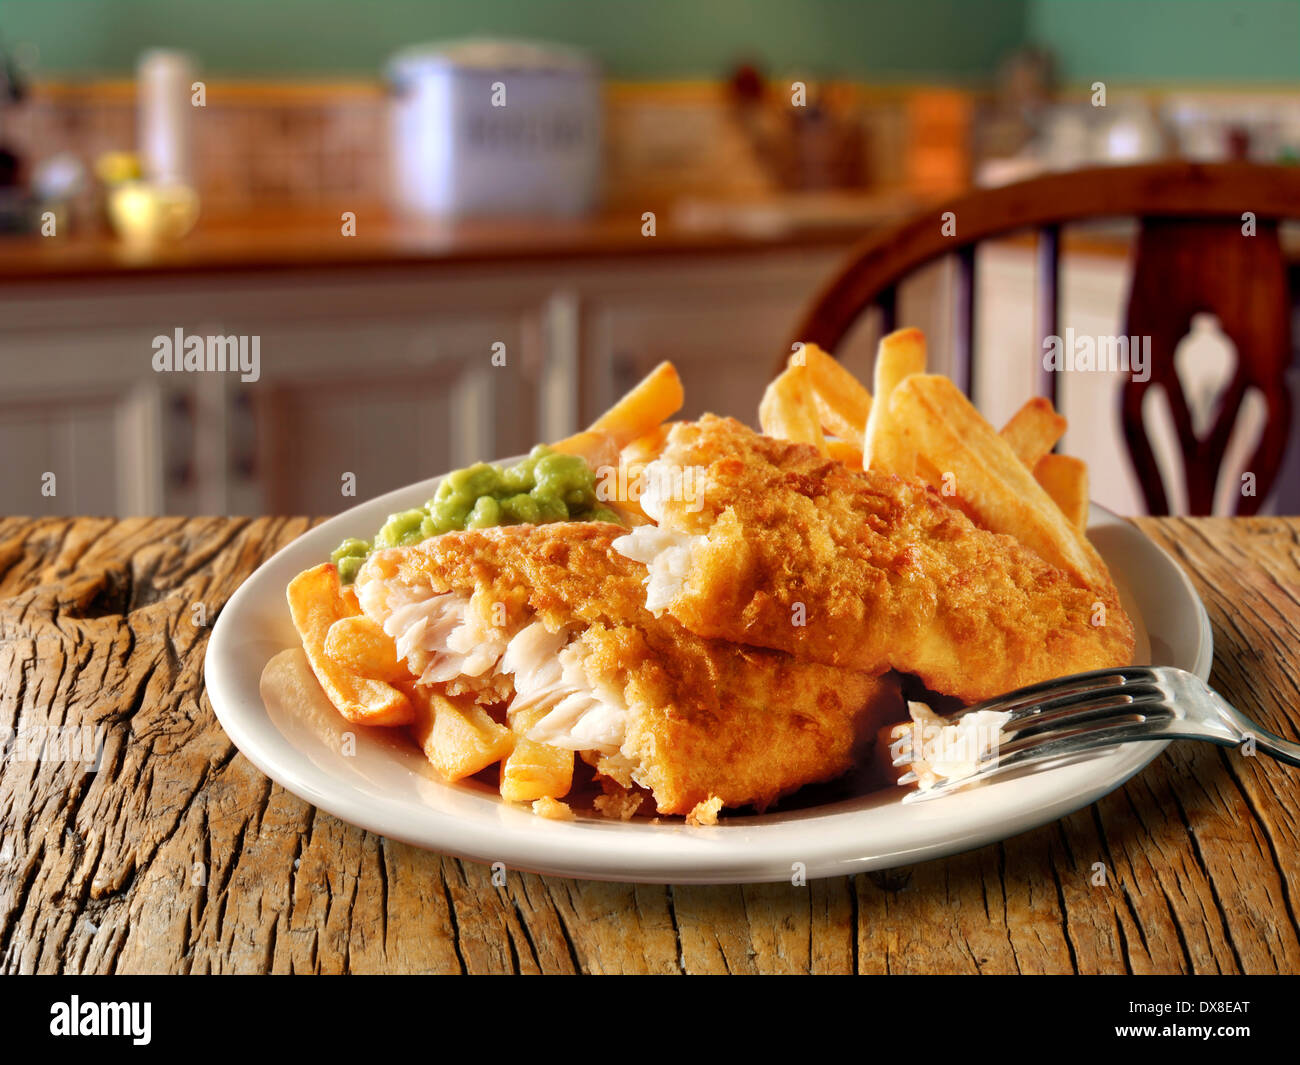 British Food - Battered Fish And Chips - Stock Image